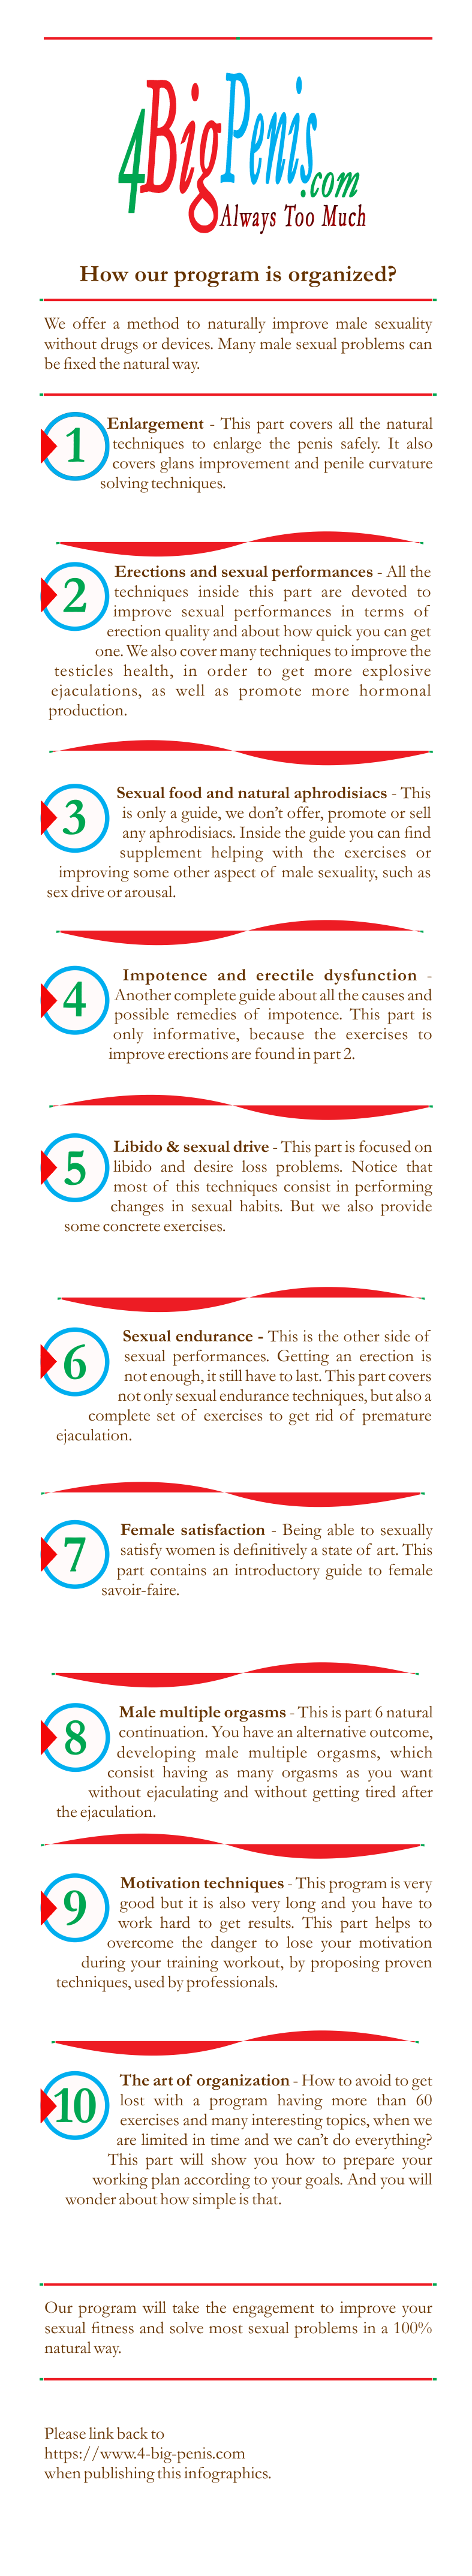 Description and fonctionning of our male sexuality program